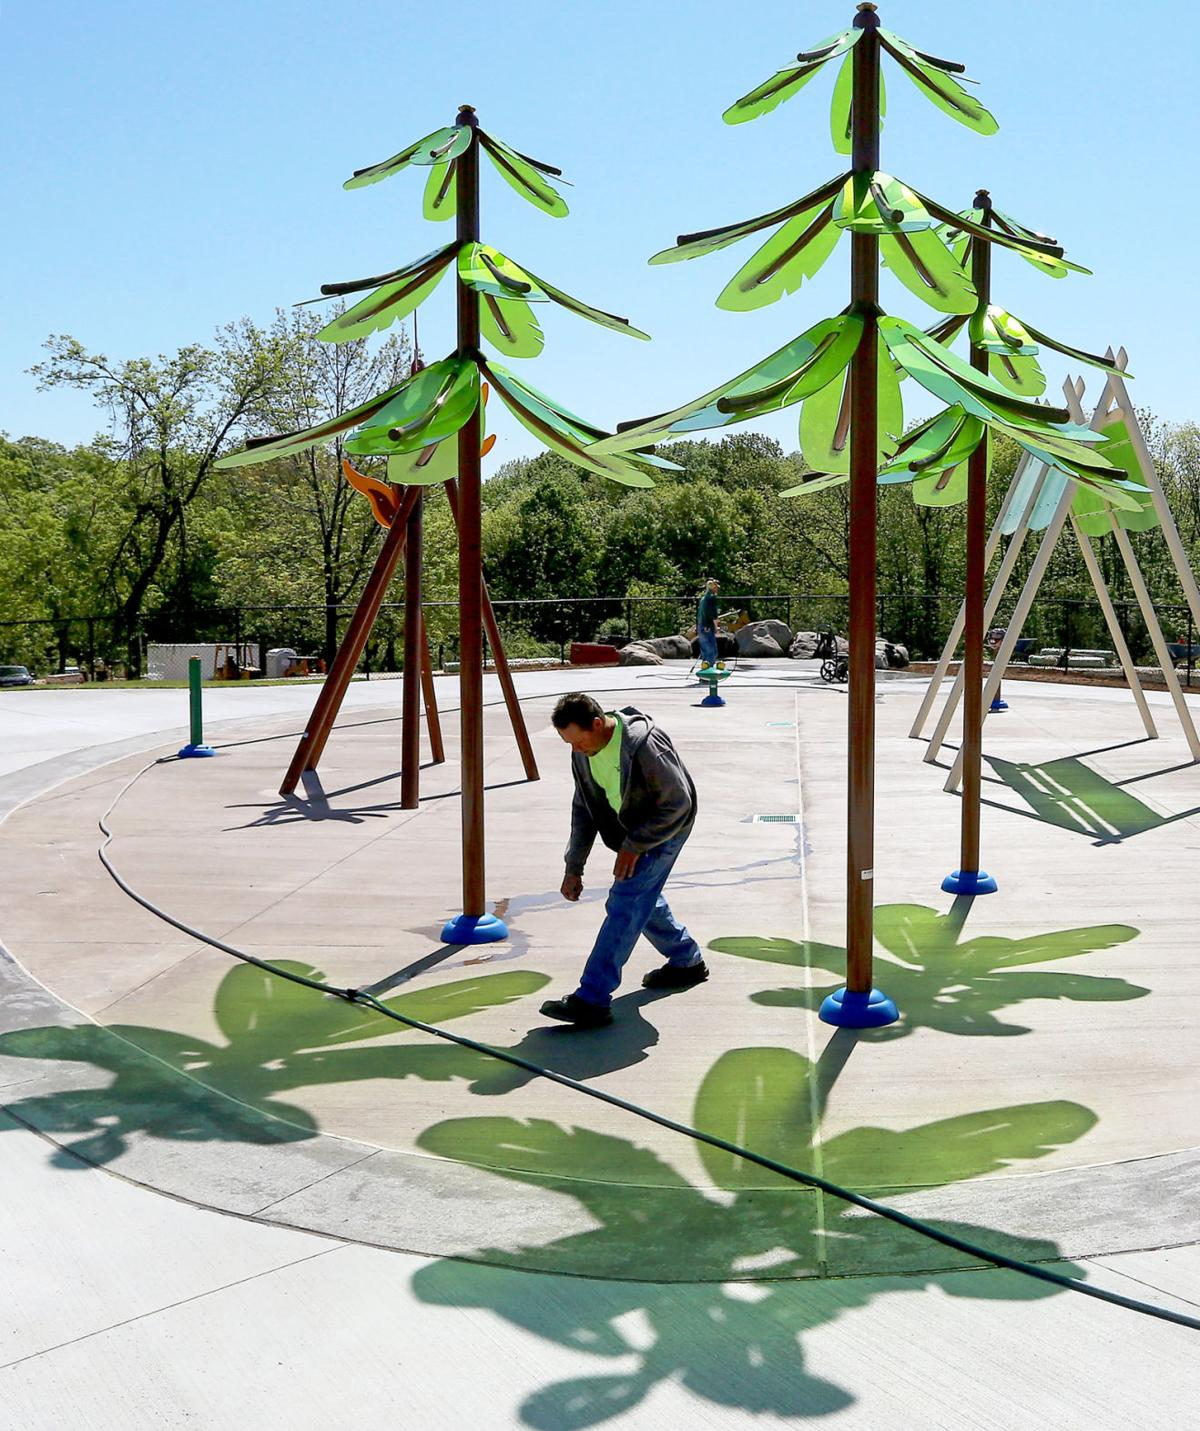 State Park Season In Full Swing And With New Amenities Local News